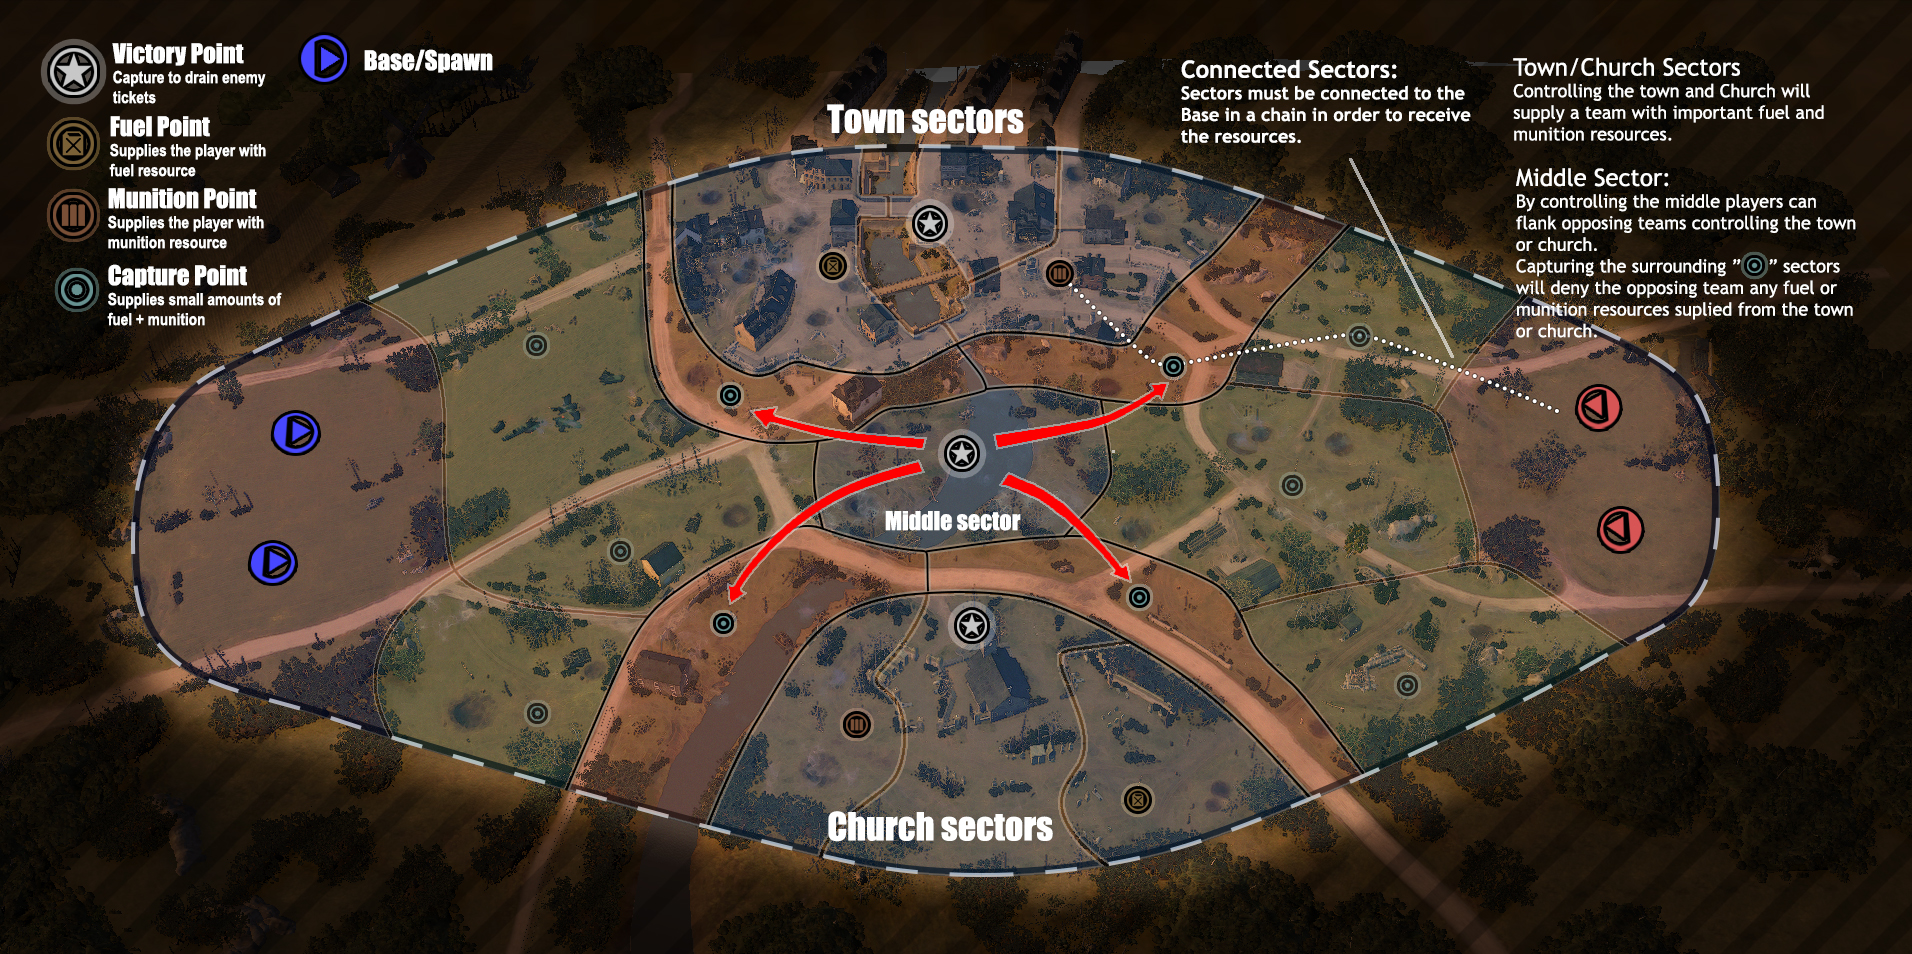 COH2_InEgnineOverview2.jpg